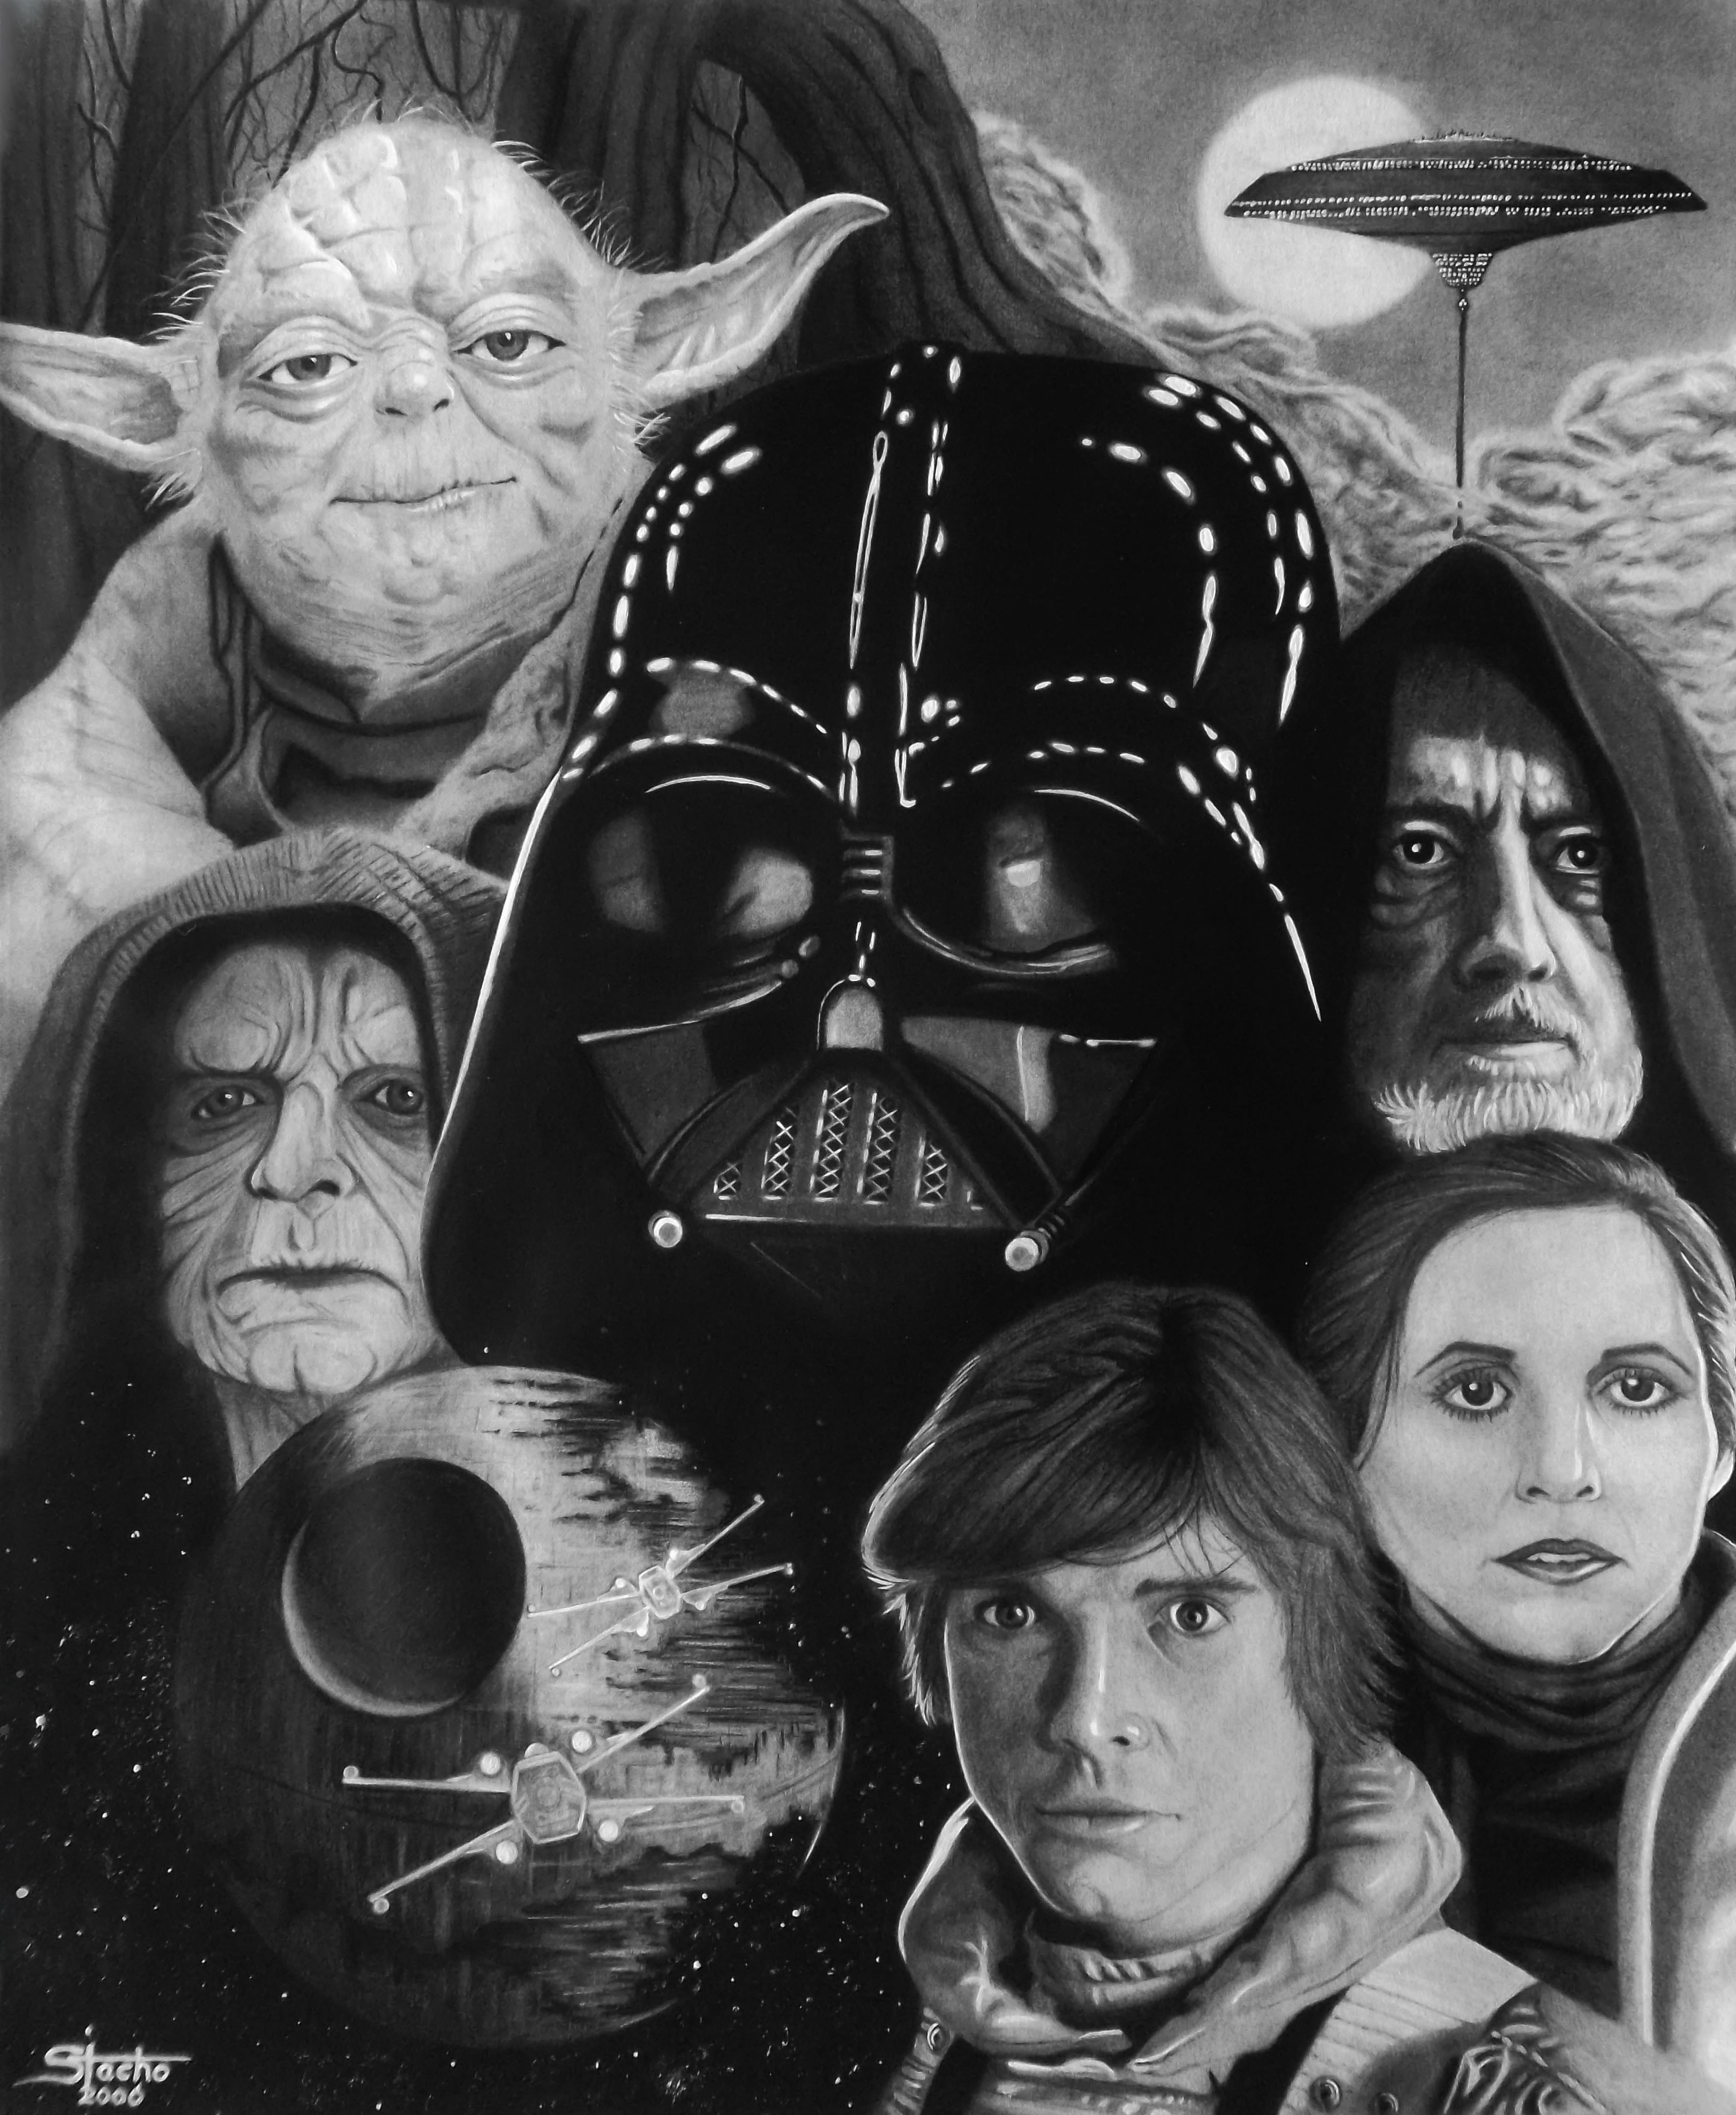 From a Galaxy Far, Far Away